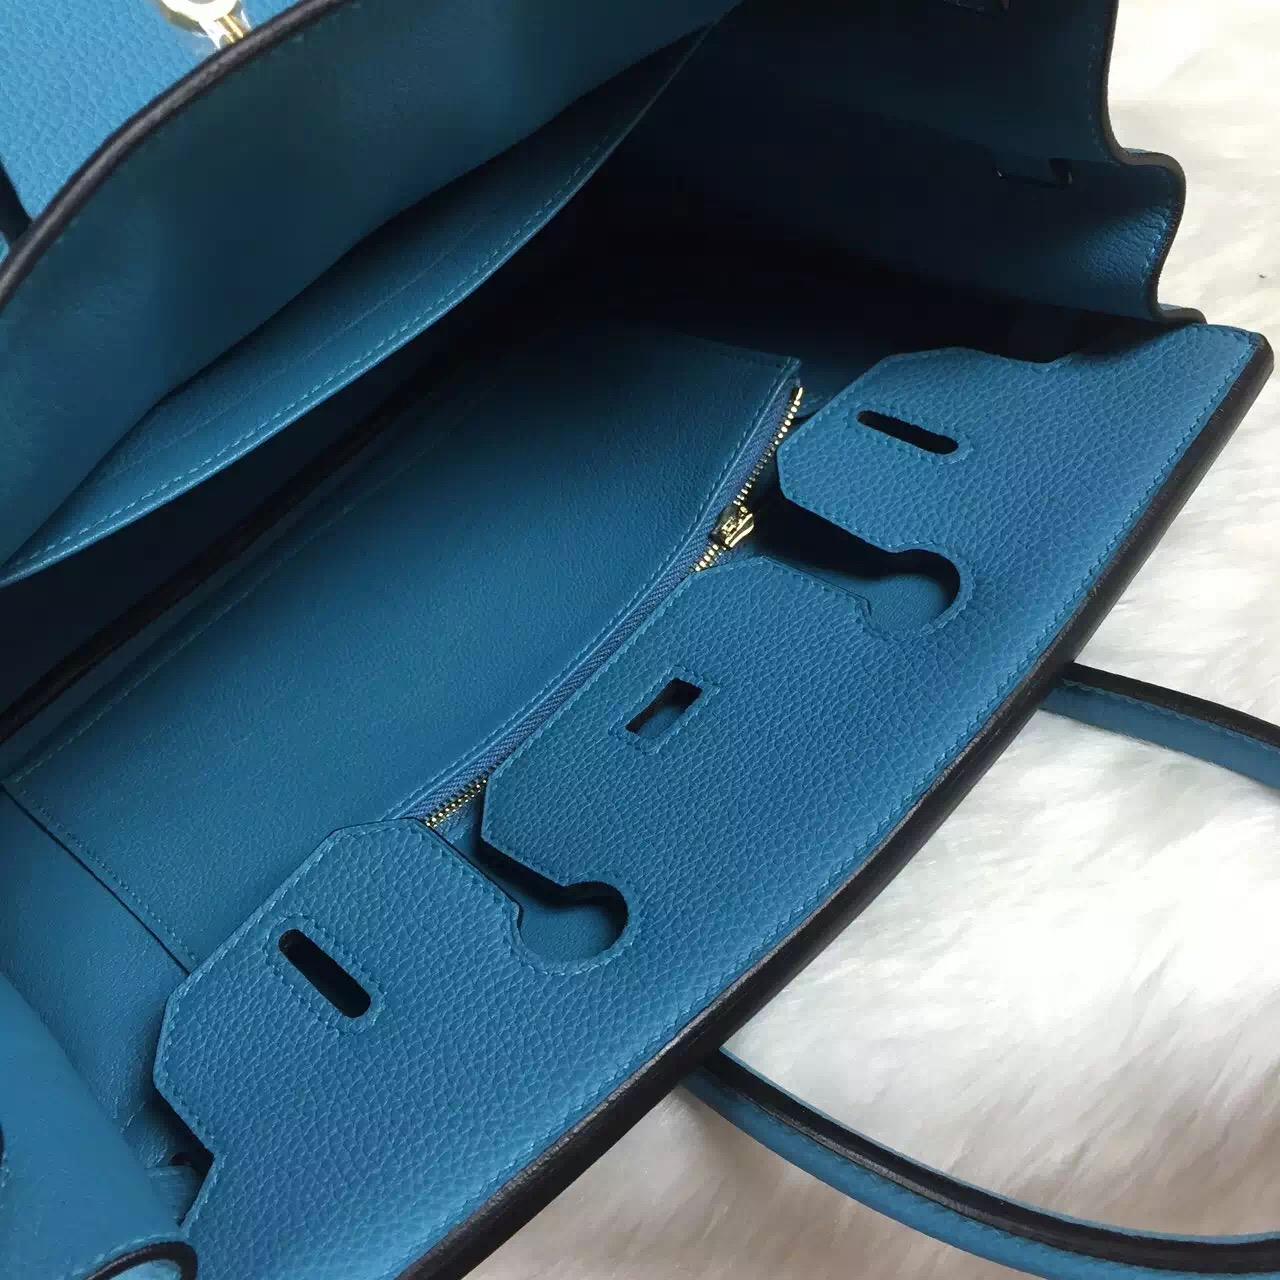 Hand Stitching Hermes 7B Turquoise Blue Original Togo Leather Birkin Bag 30CM